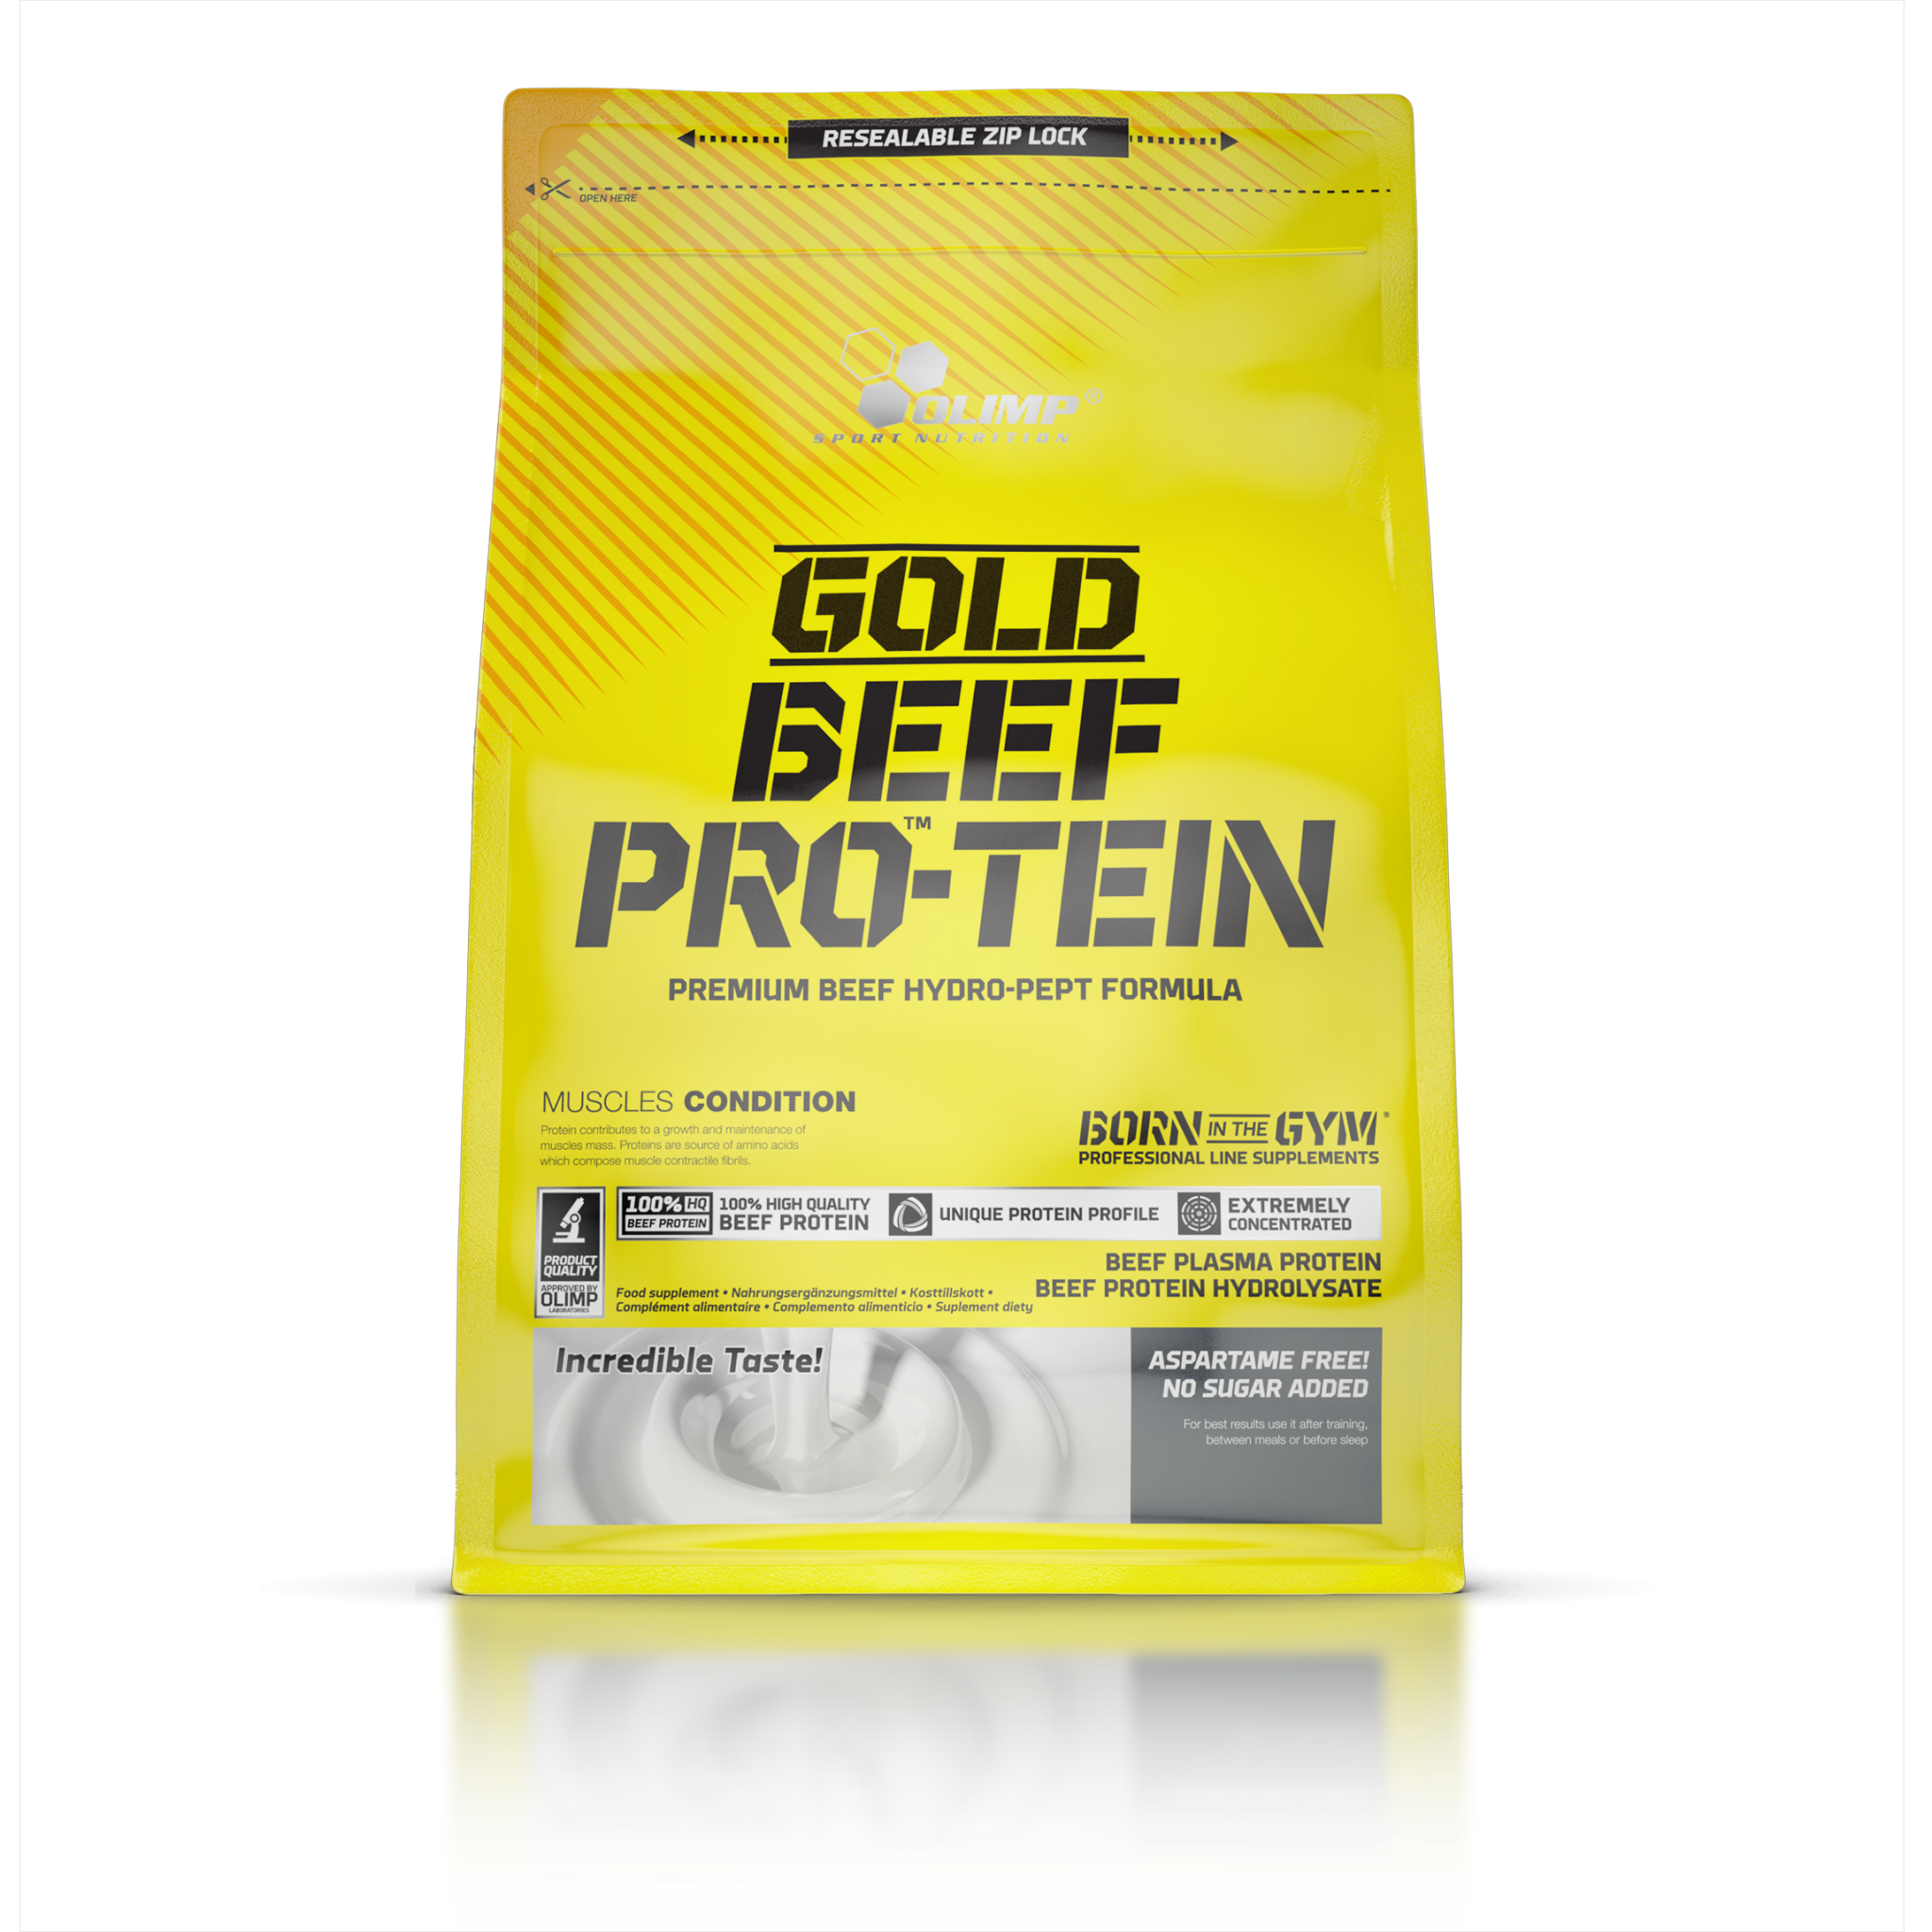 olimp-gold-beef-pro-tein-700g.png